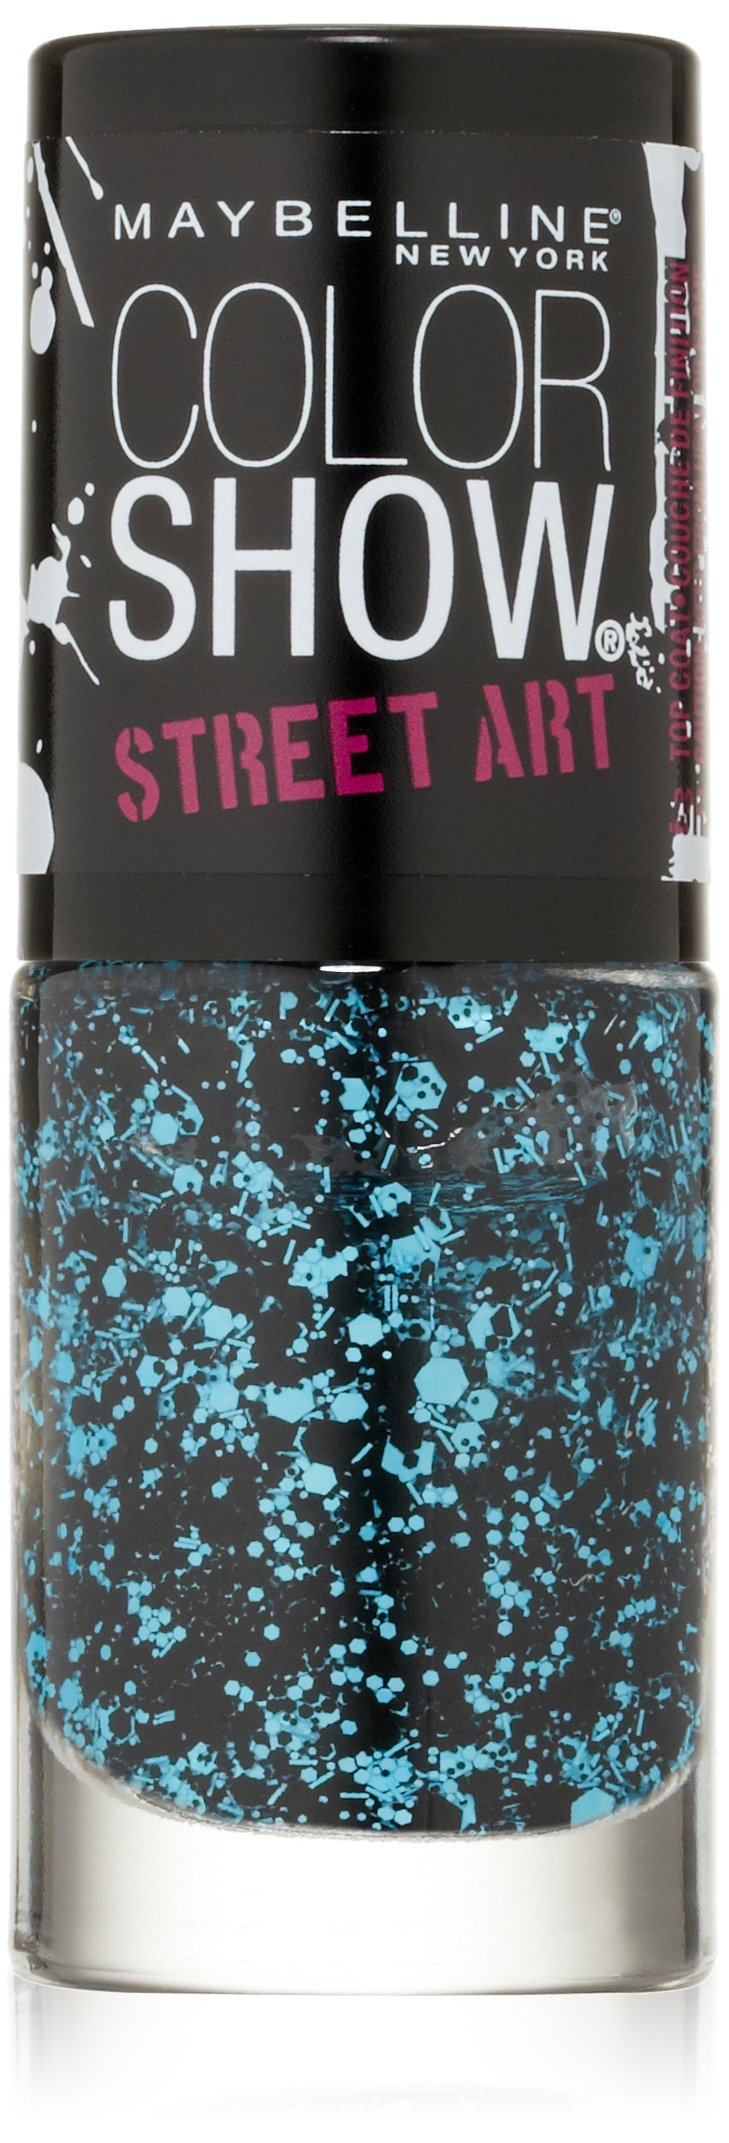 Maybelline New York Color Show Street Art Top Coat No. 42 Blue Beats, 0.23 Fluid Ounce